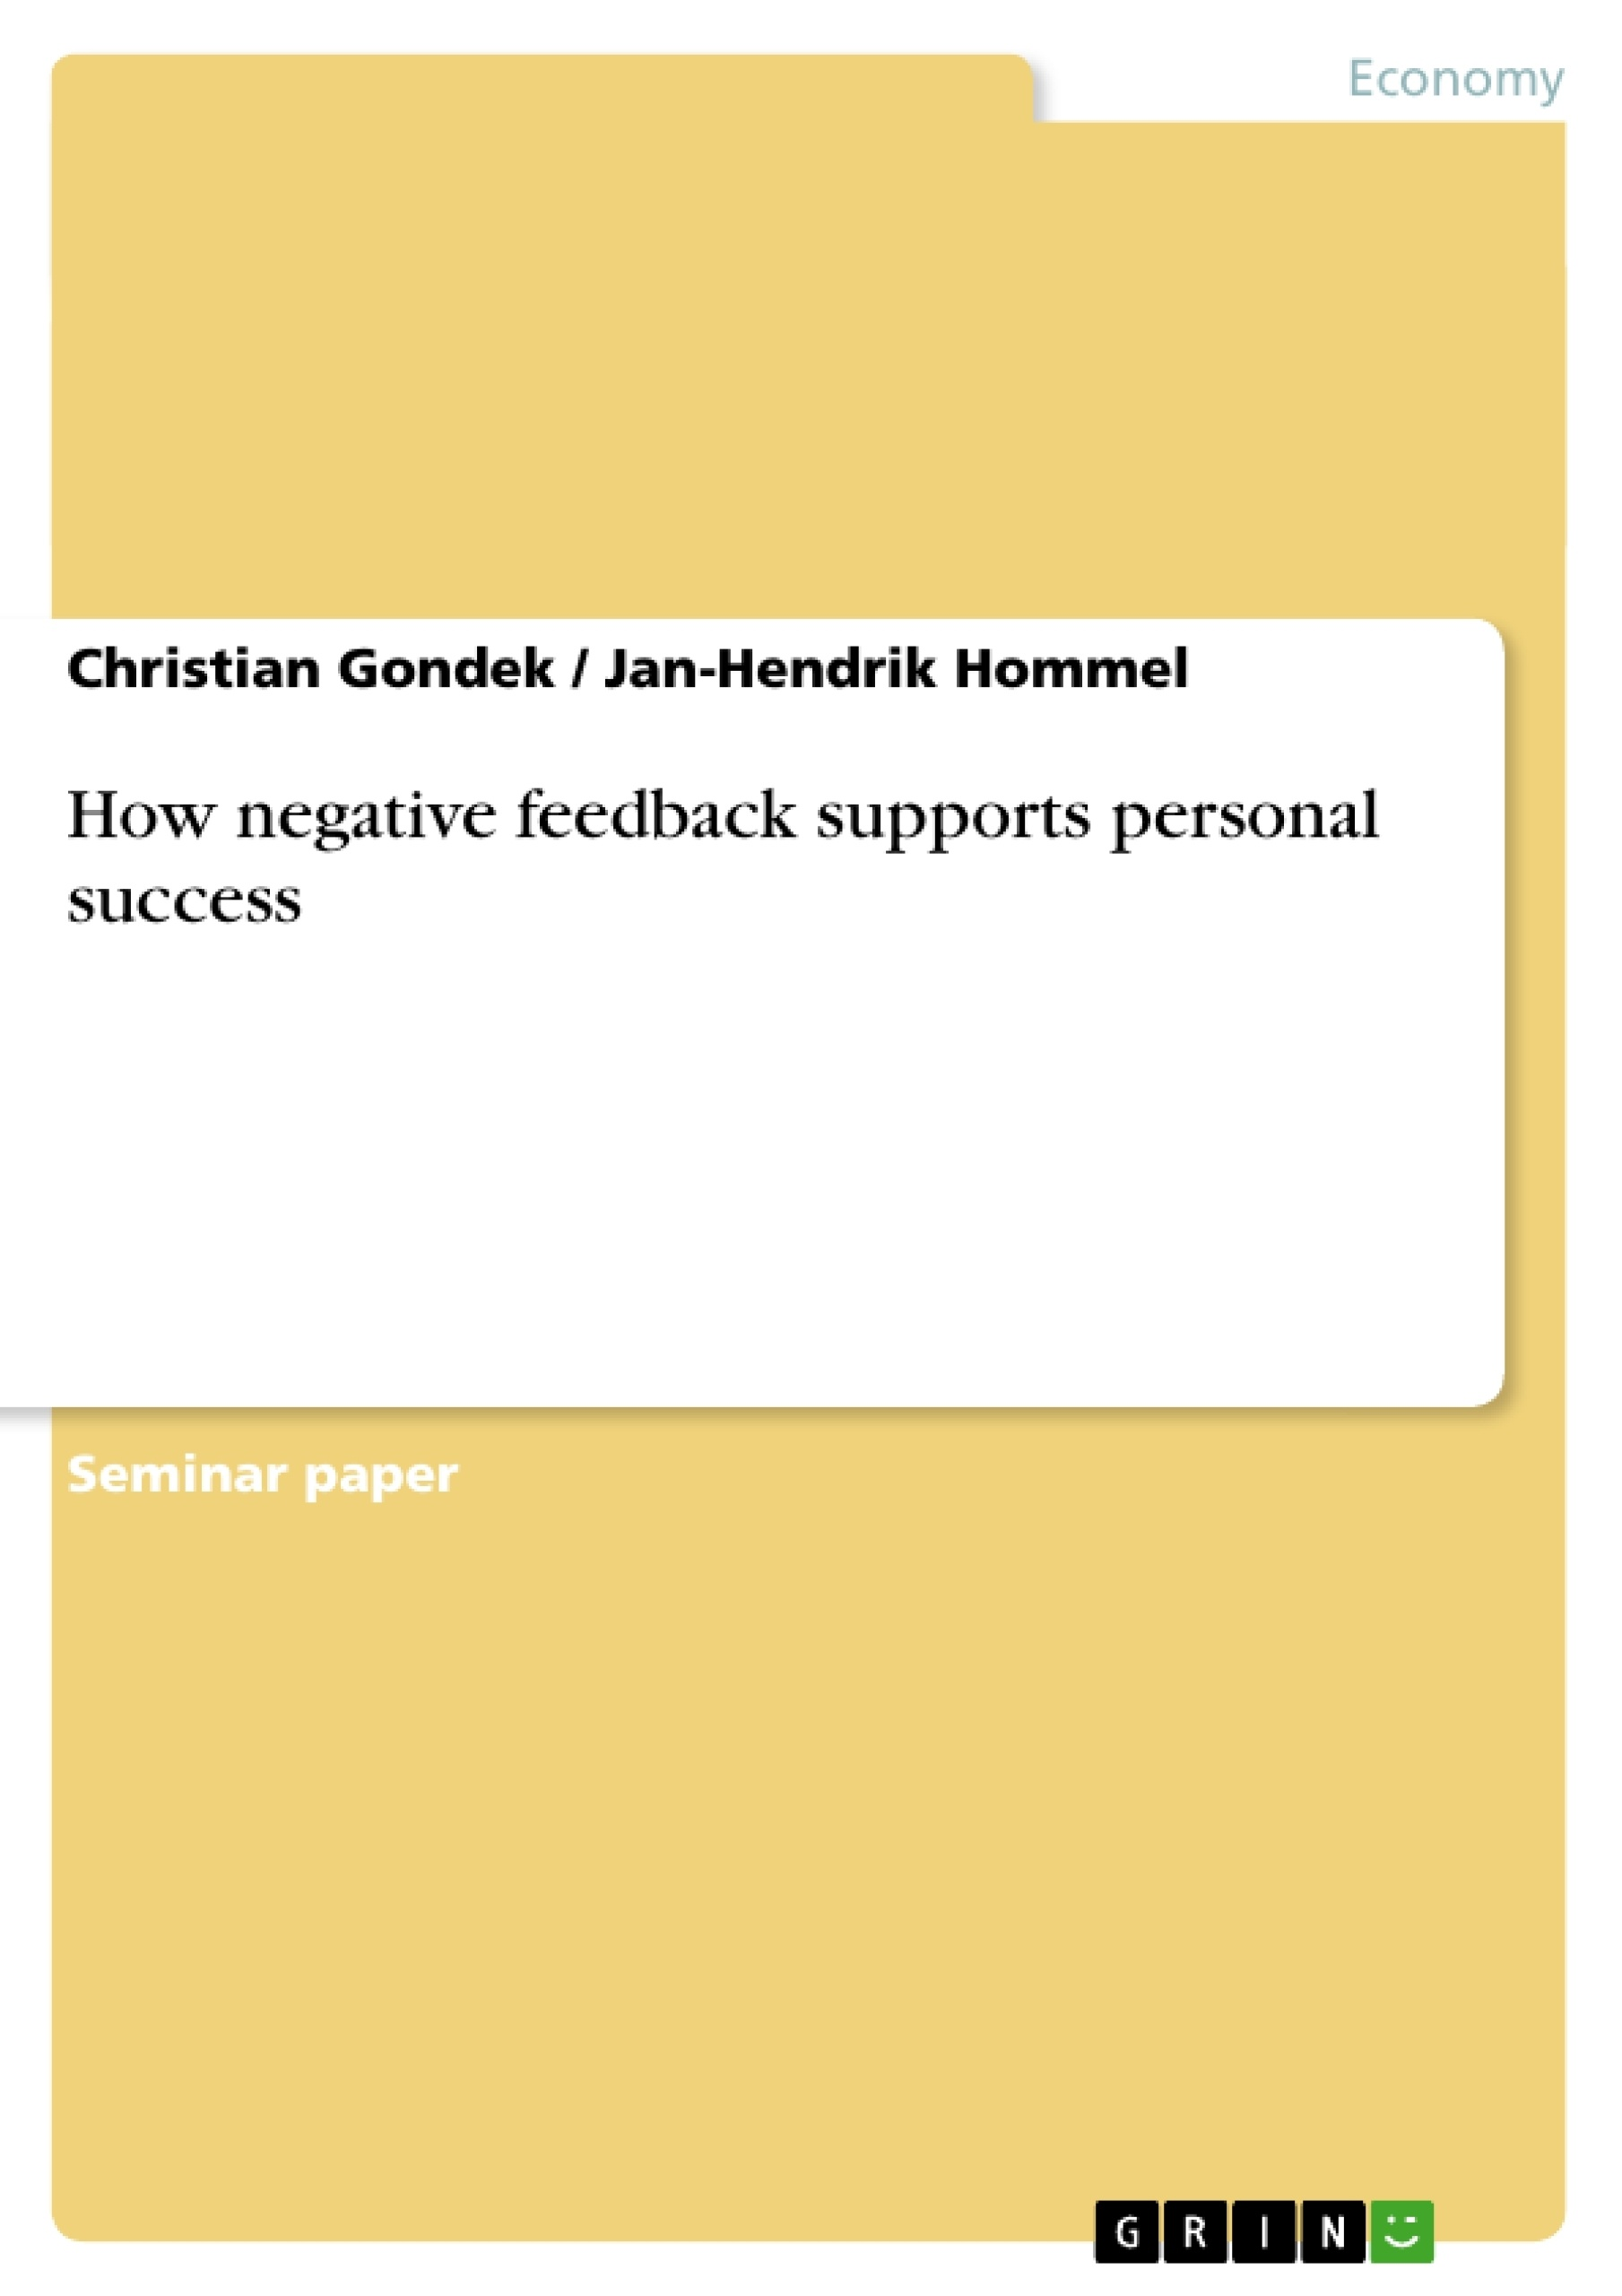 Title: How negative feedback supports personal success